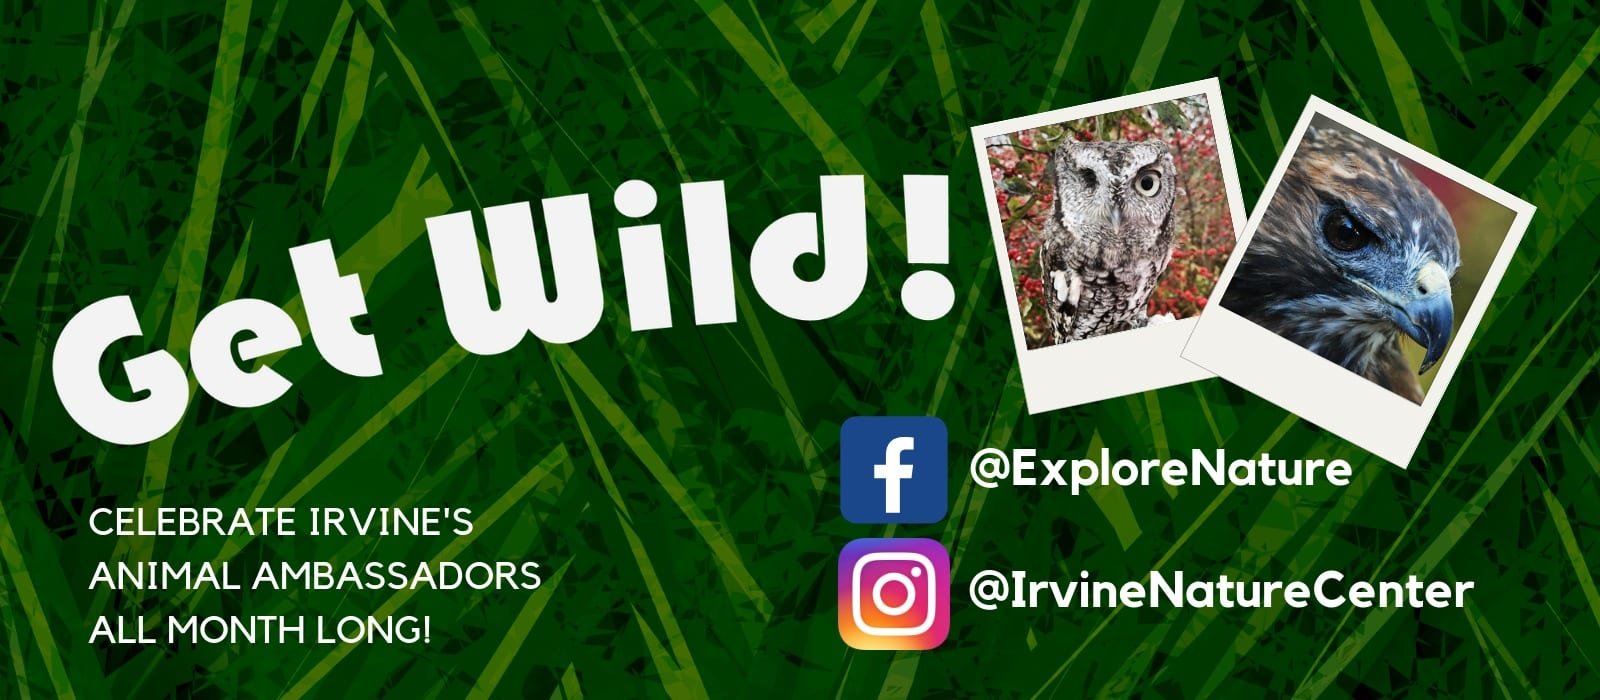 CELEBRATE-IRVINES-ANIMAL-AMBASSADORS-ALL-MONTH-LONG-WITHANIMAL-ENCOUNTERS-OF-ALL-KINDS.CHOOSE-YOUR-FAVORITE-MAKE-A-DONATION-AND-GET-SOME-SWEET-SWAG-TO-HELP-IRVINE-CELEBRATE-GIVING-TUESDAY-2